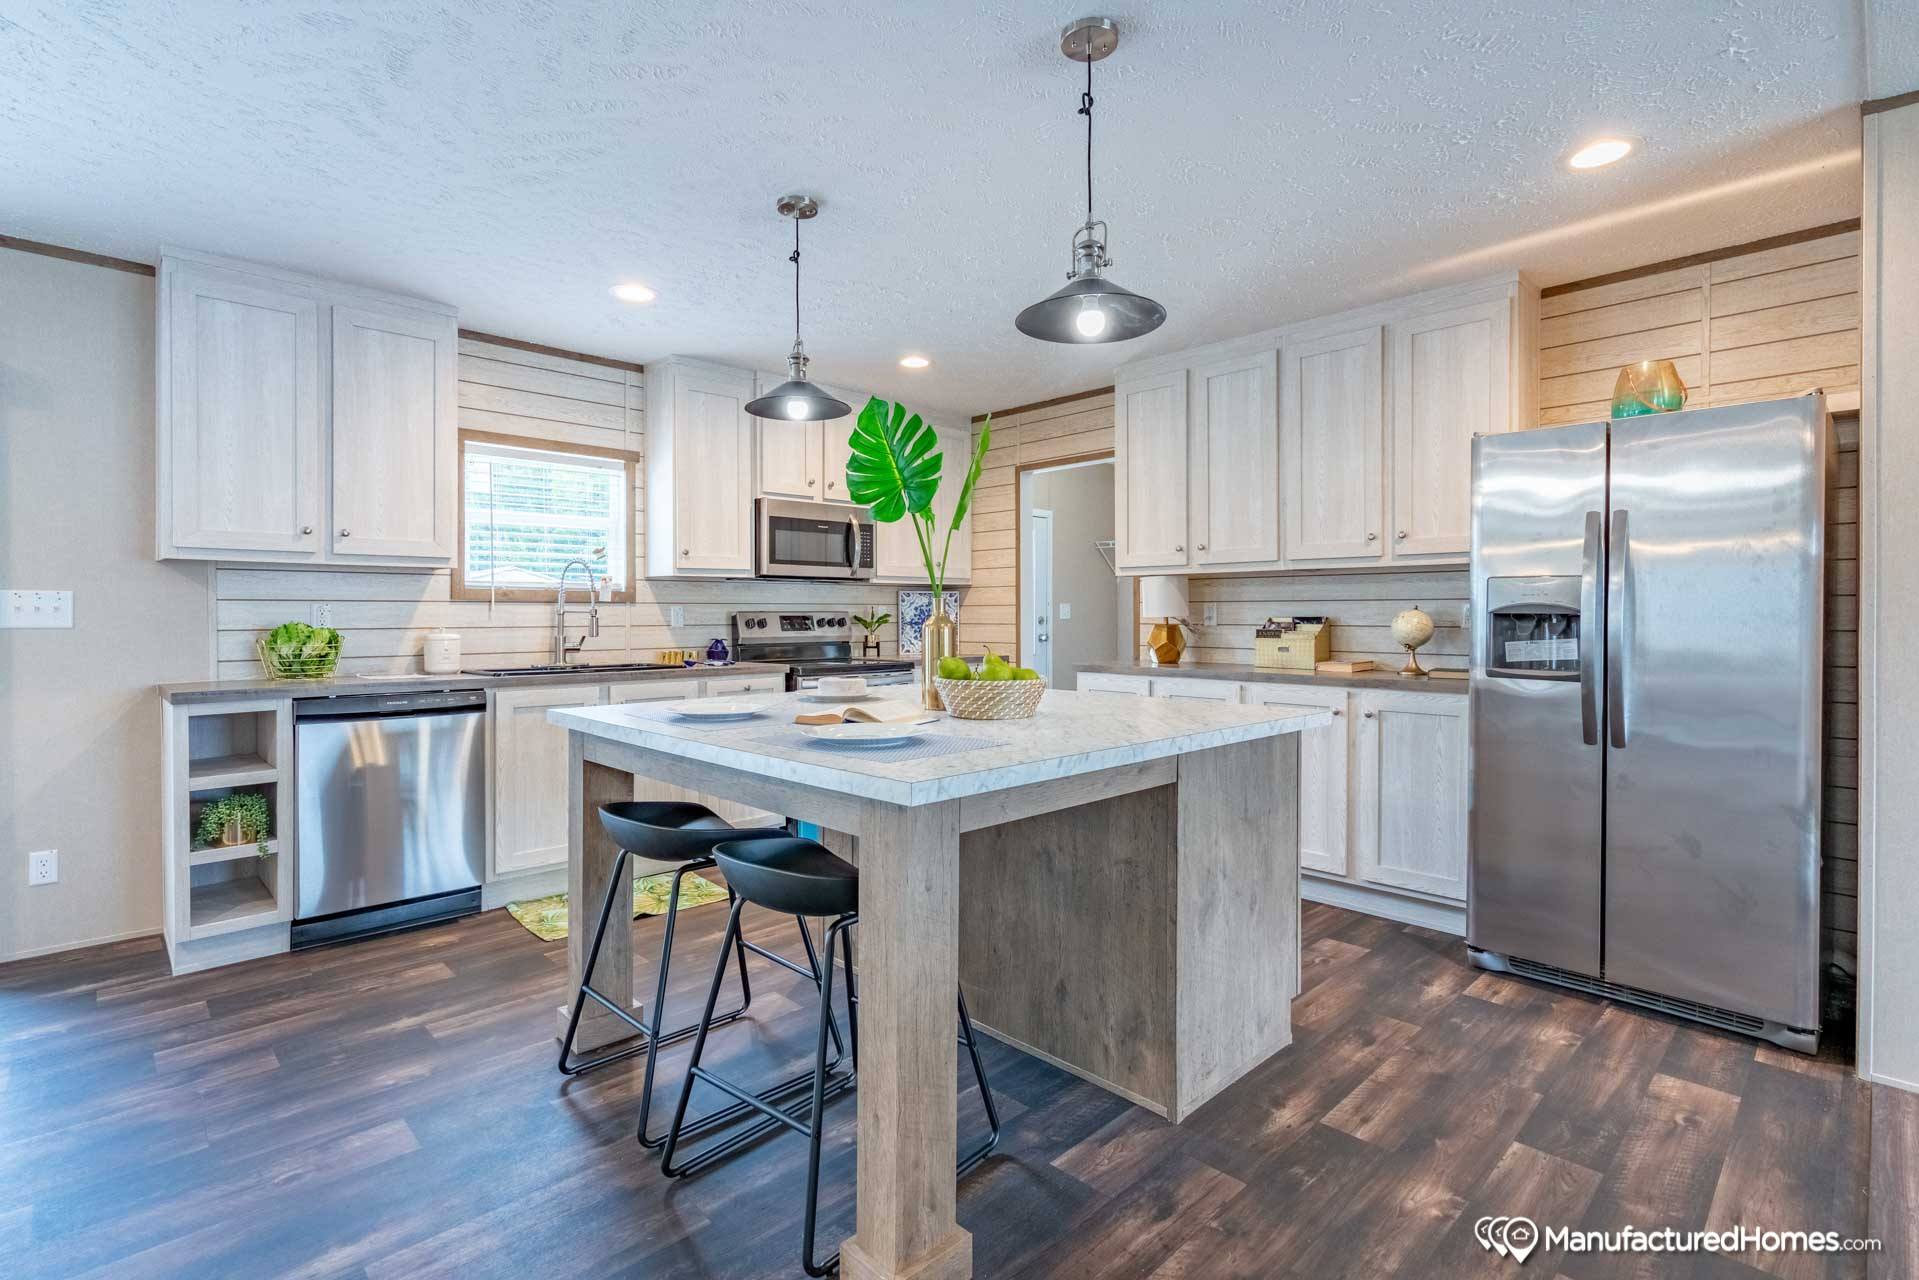 Ultra Pro The Big Boy Clayton Homes Of Cayce Sc